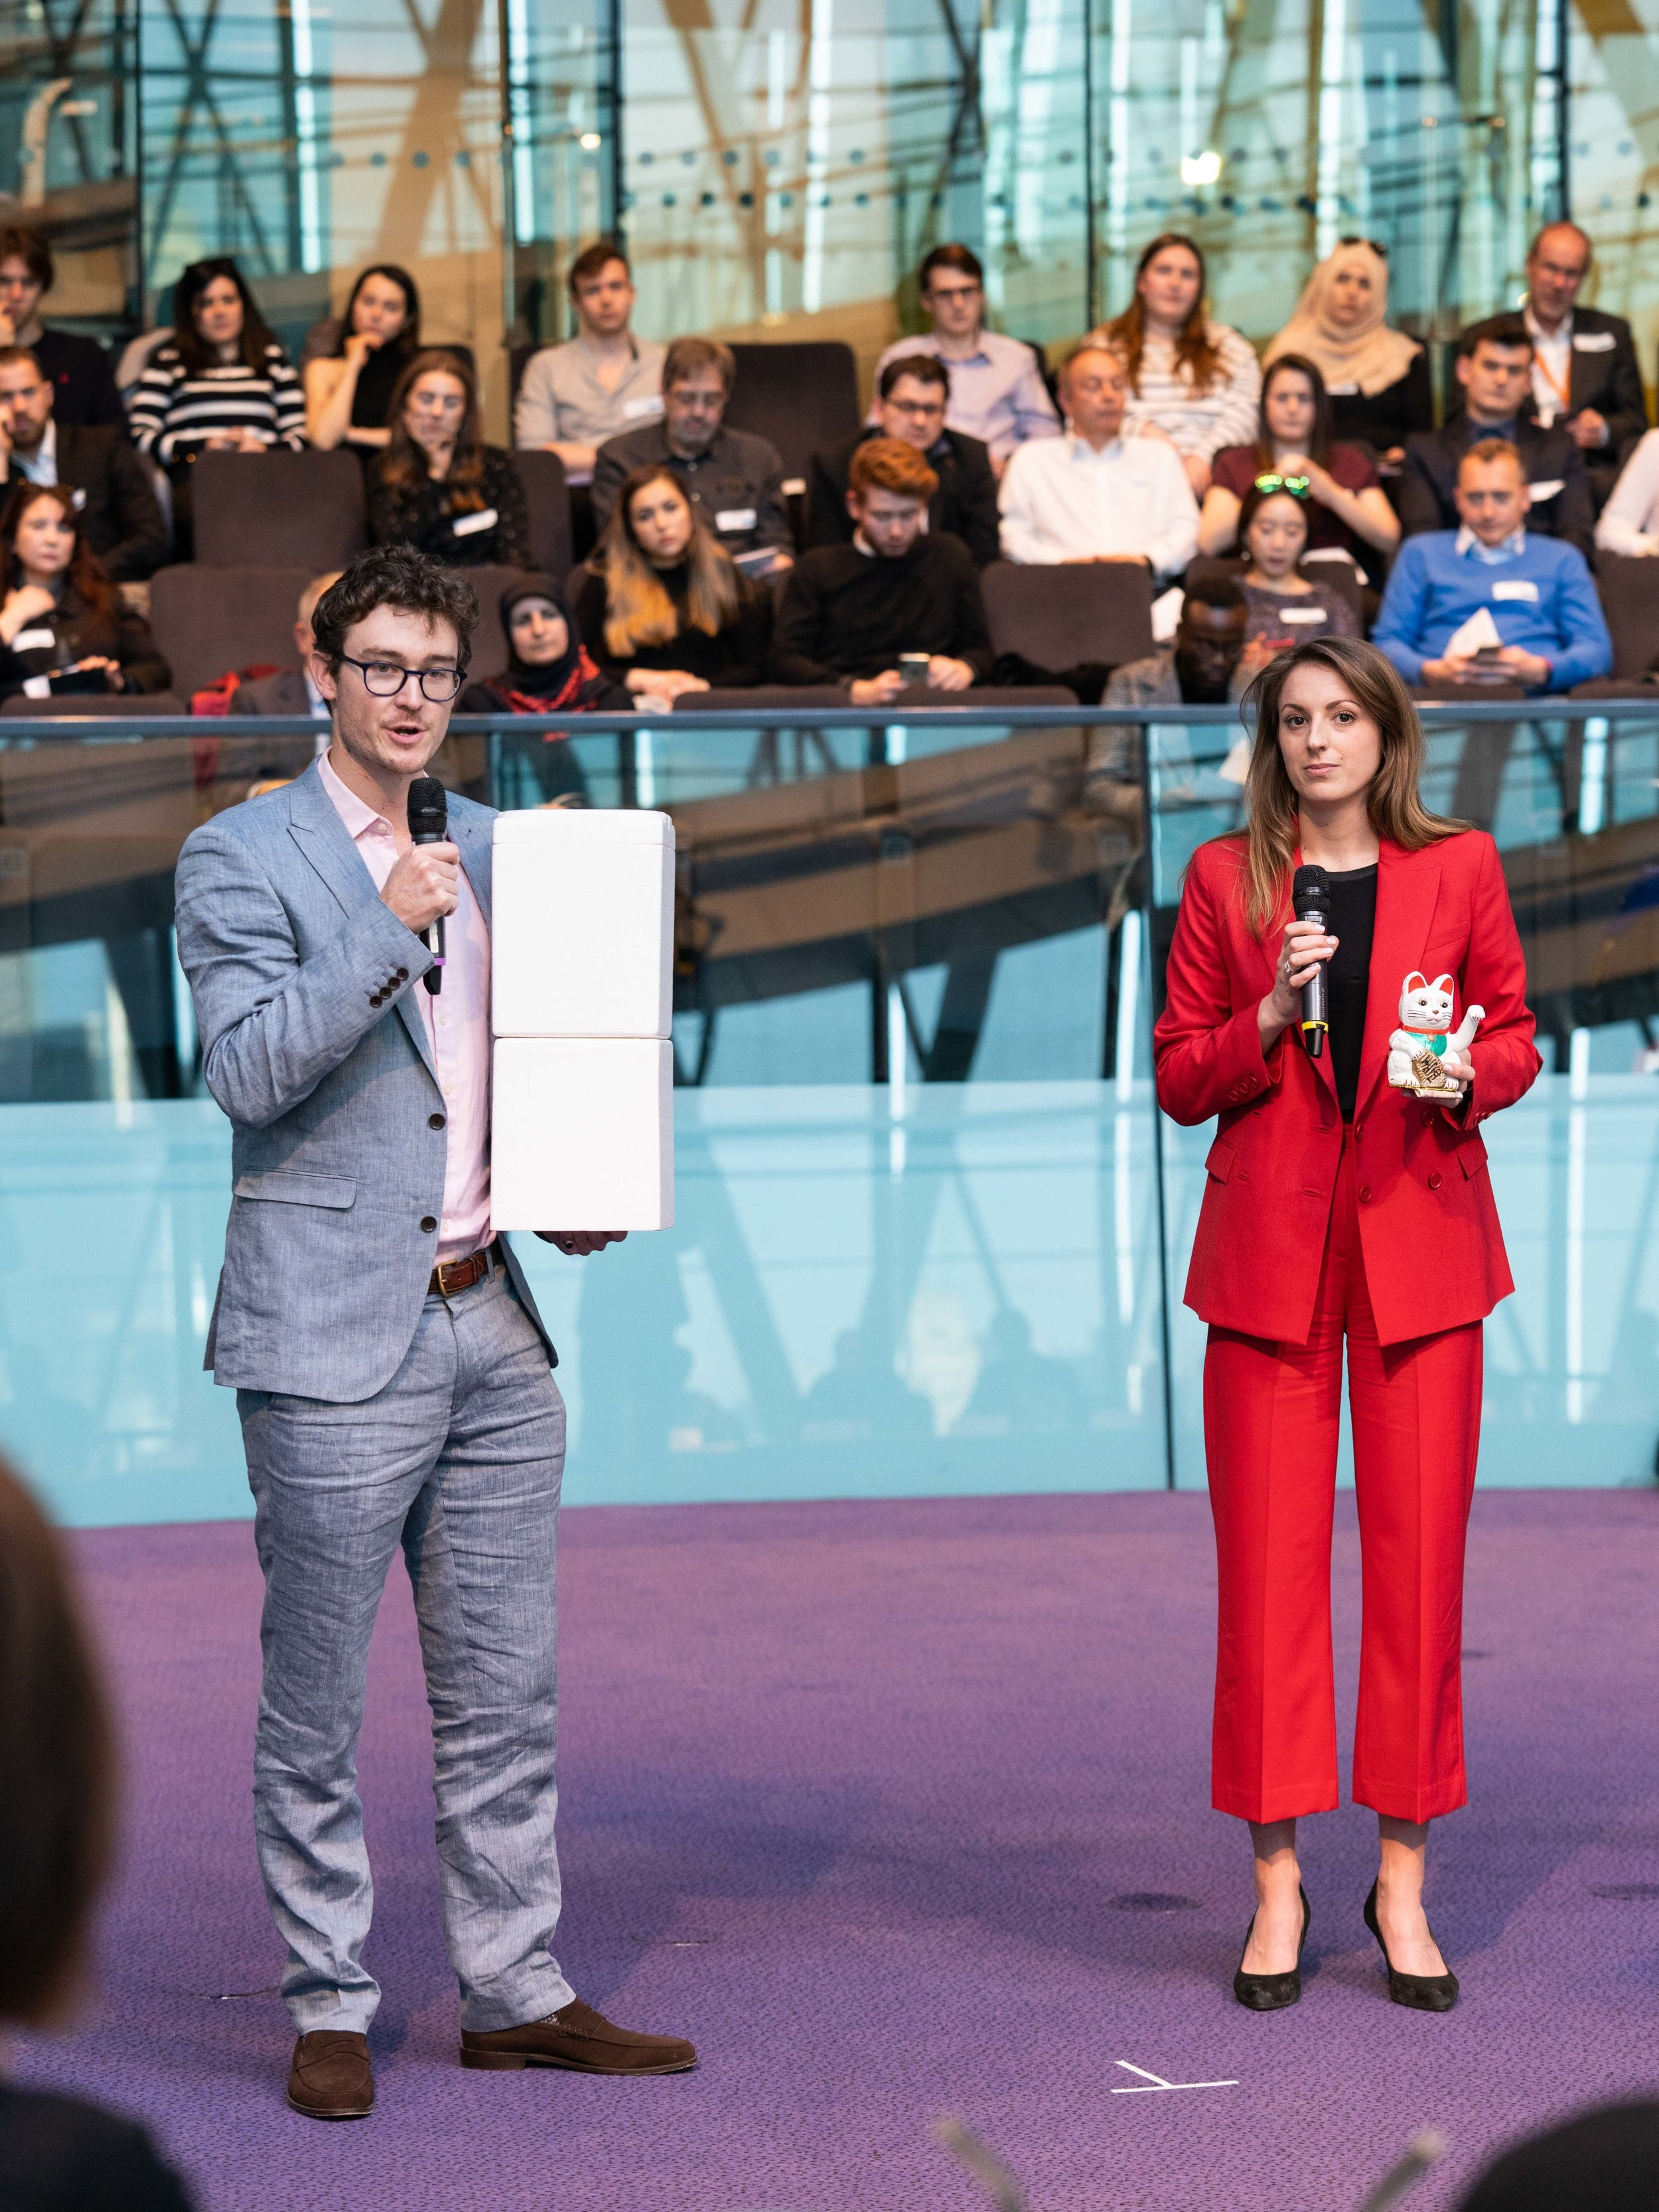 Katie with Charlie (EV Driver & Styroloop) presenting at the 2019 Mayor's Award in London